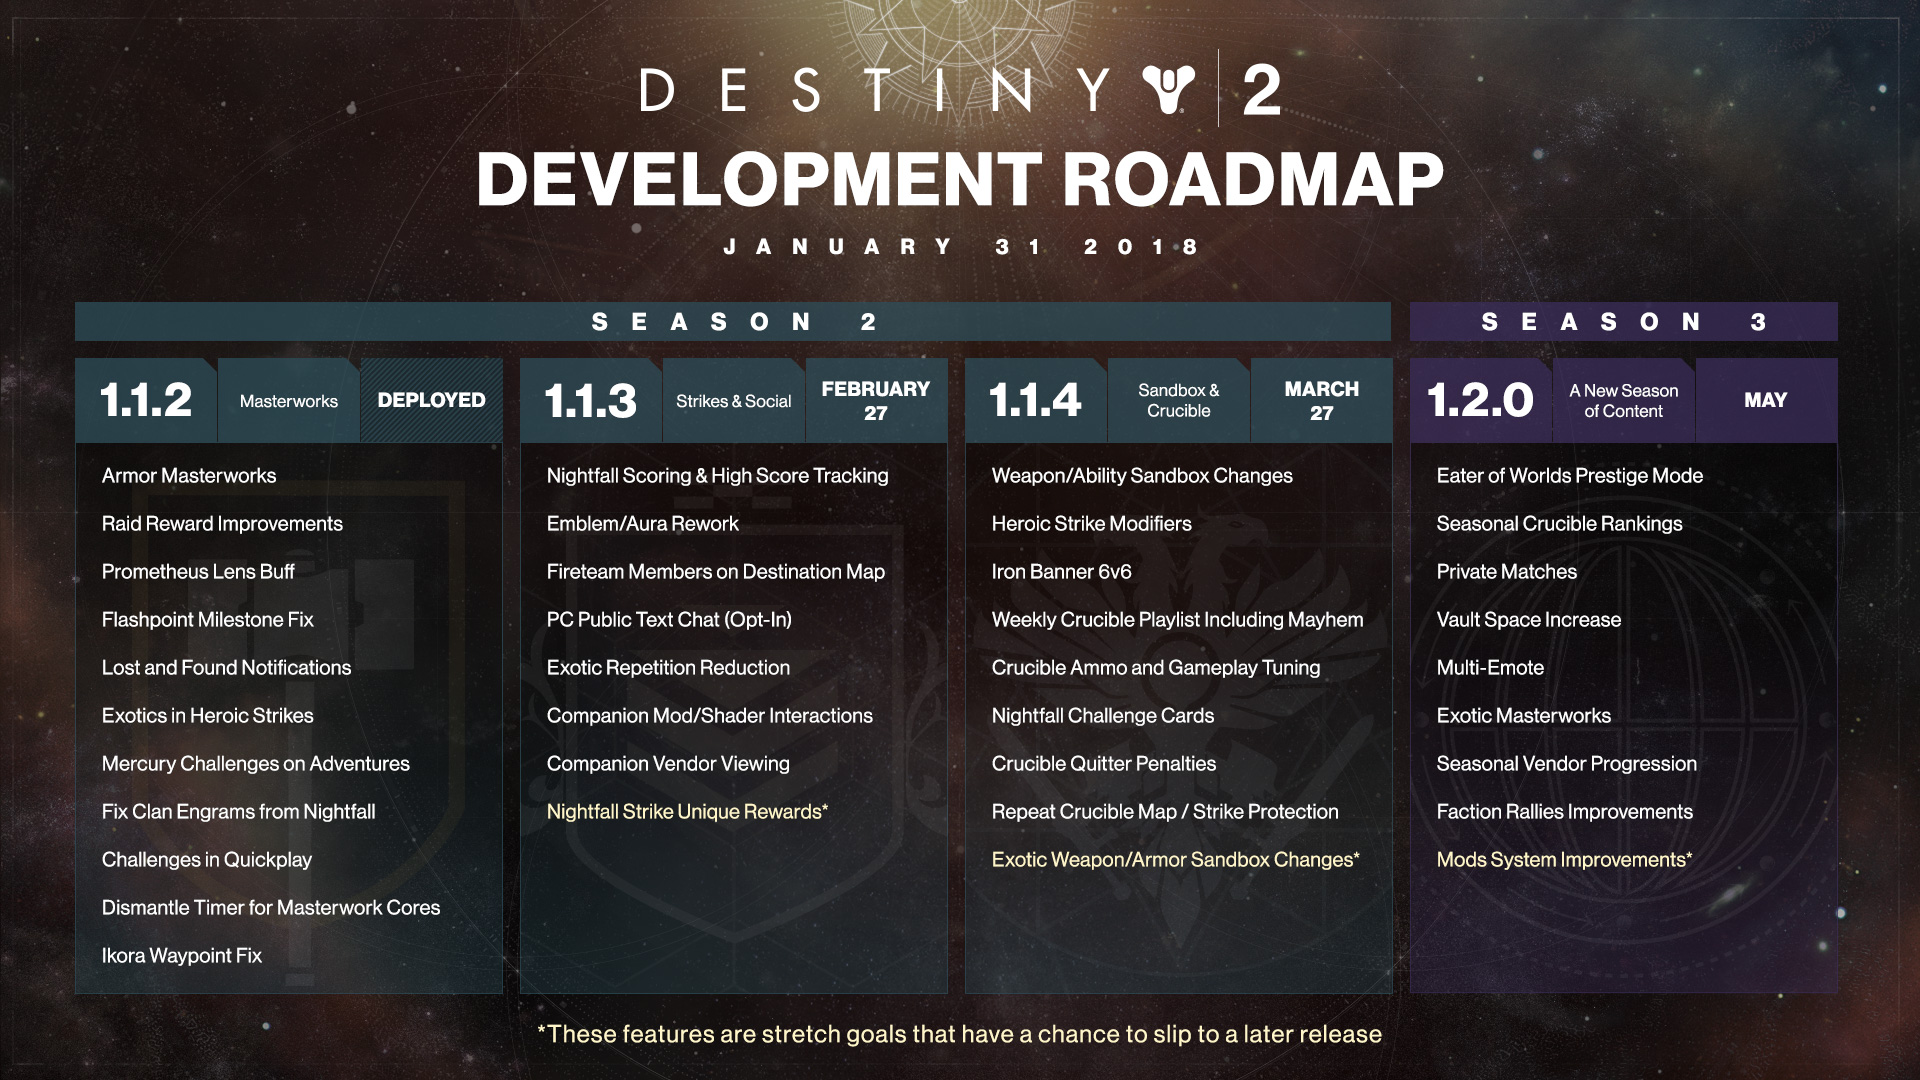 D2_Development_Roadmap_1312018.jpg?cv=39